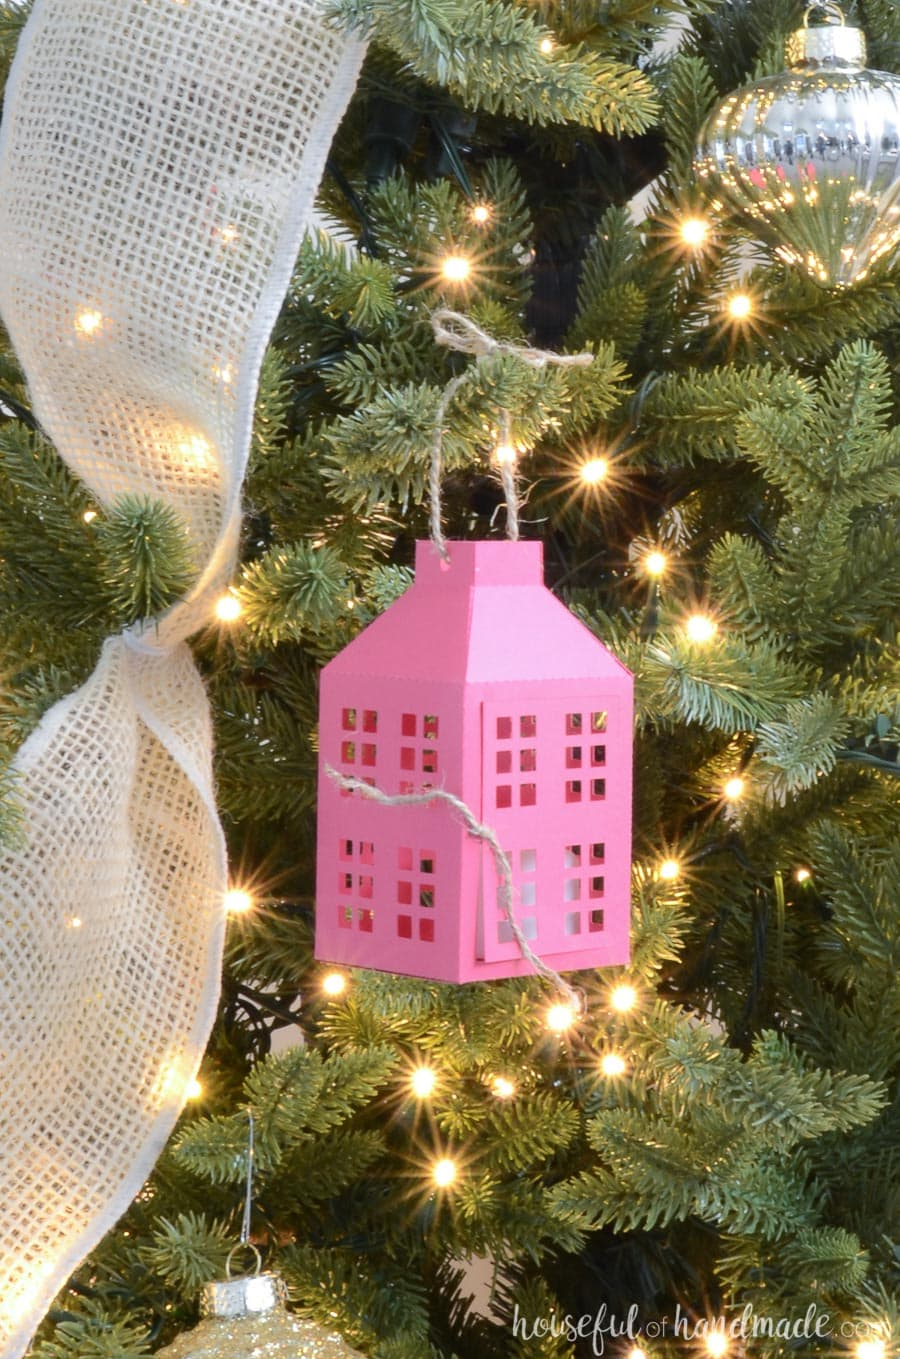 Rustic pink paper lantern Christmas ornament hanging on the Christmas tree.